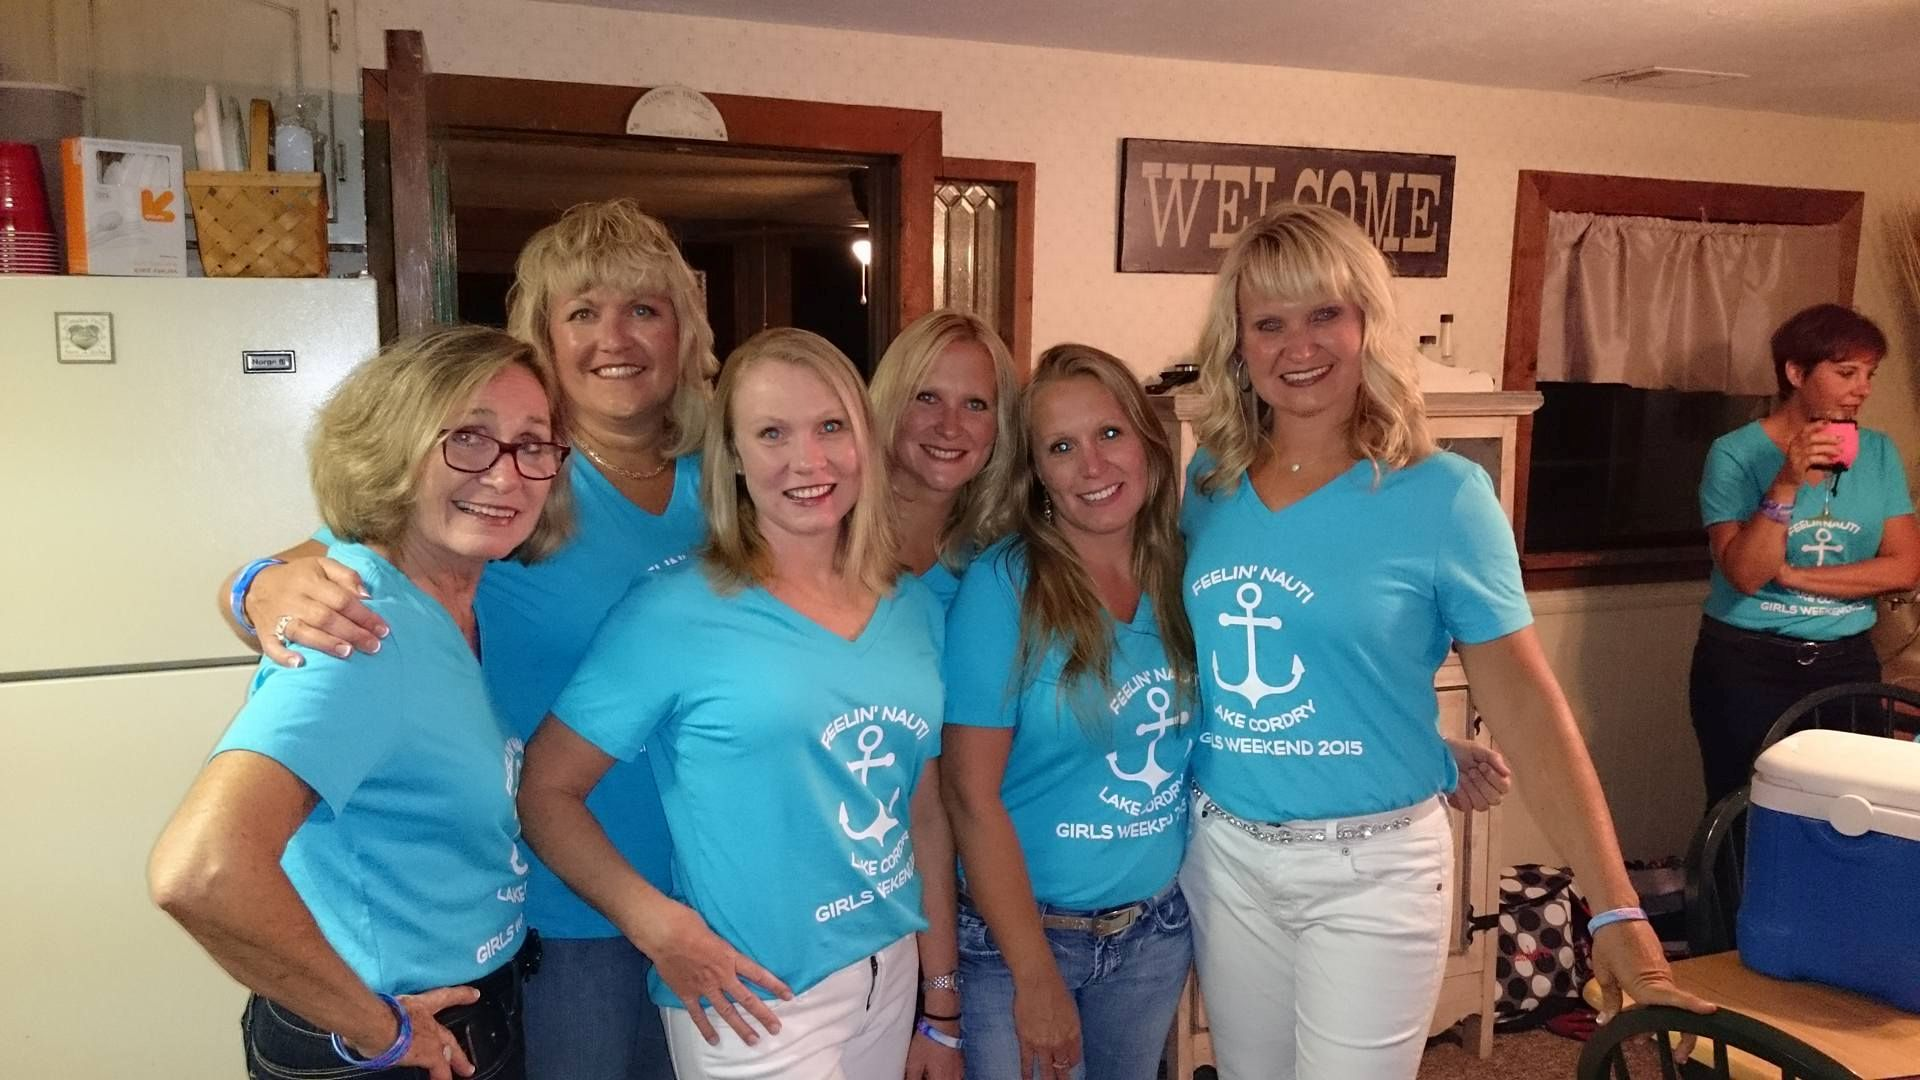 Custom t shirts for girls weekend at lake cordry shirt for Www custom t shirts